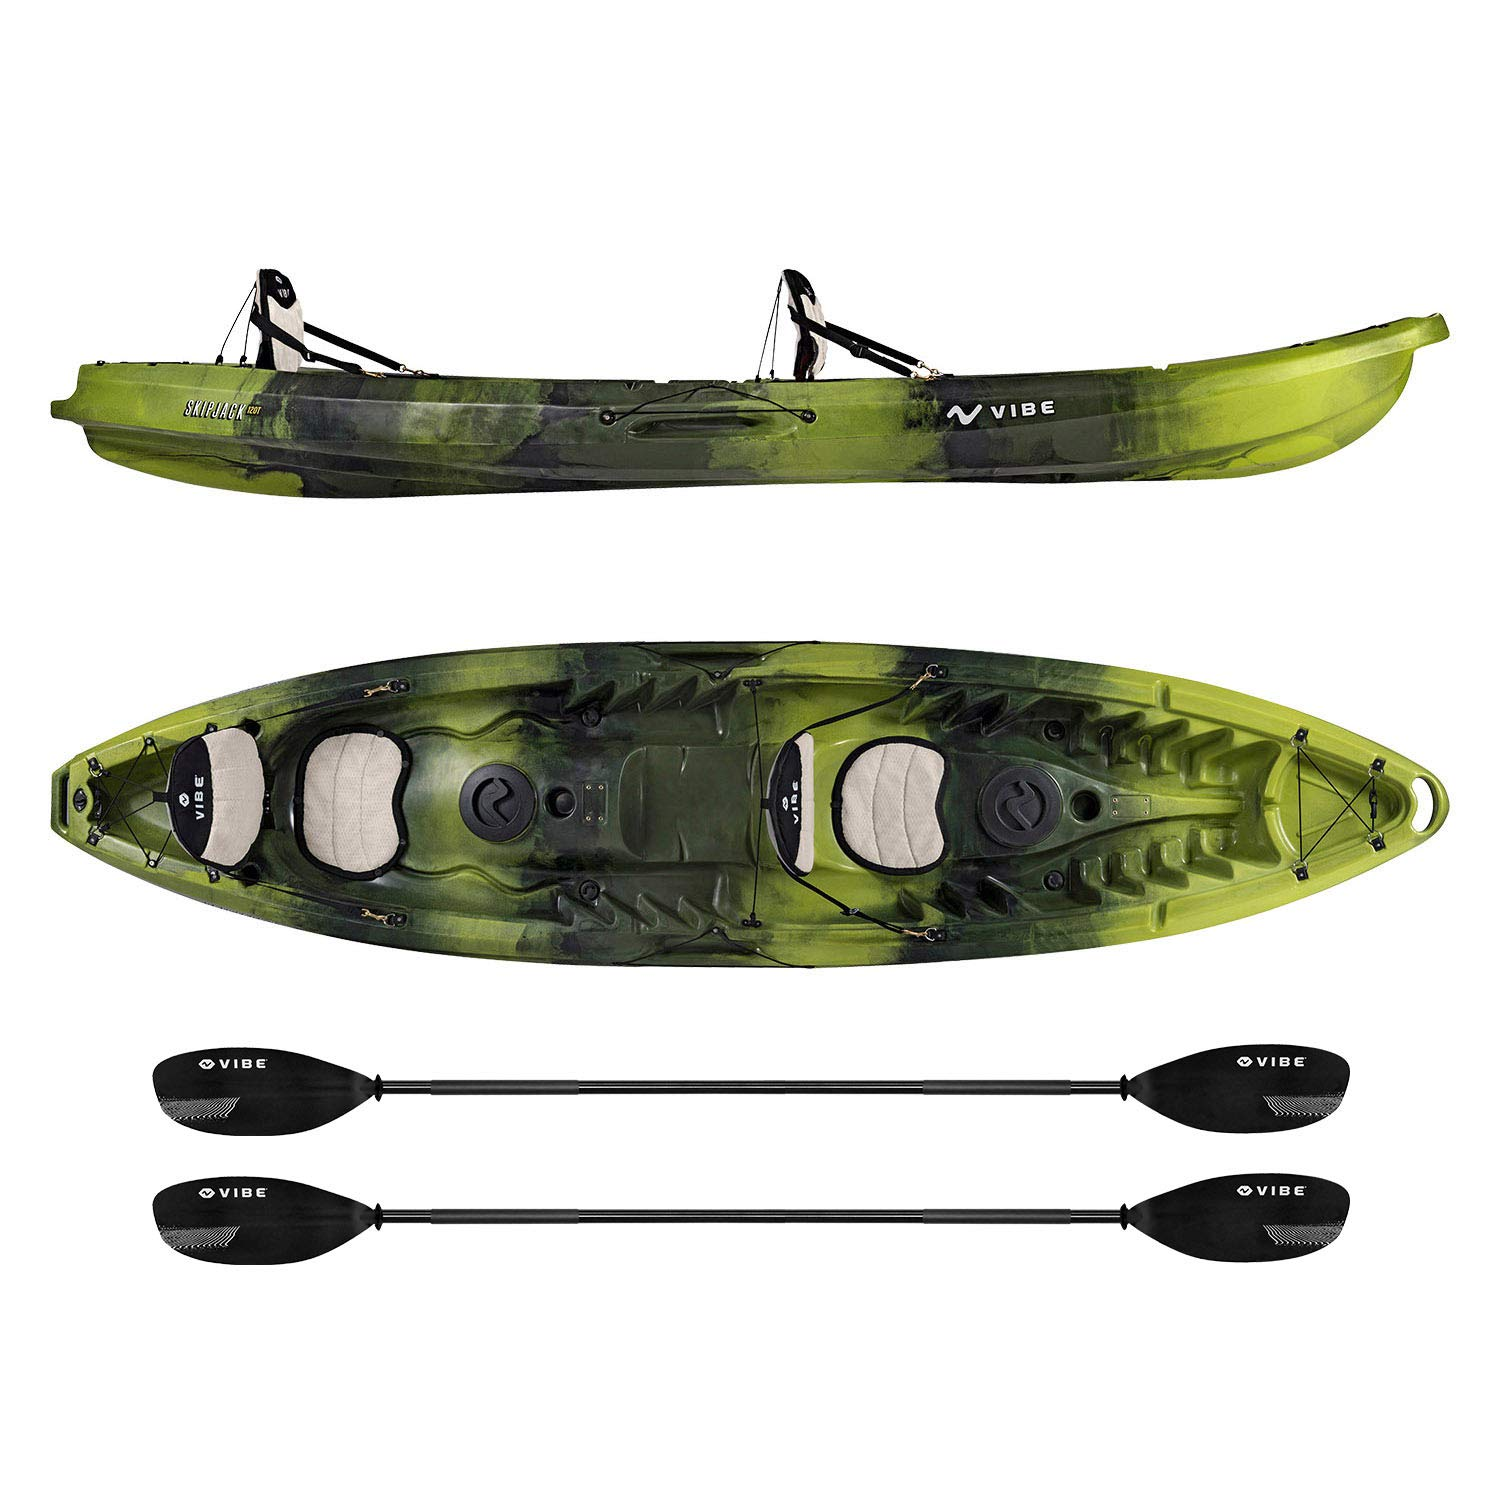 Vibe Kayaks Skipjack 120T 12 Foot Tandem Angler and Recreational Two Person Sit On Top Fishing Kayak with 2 Paddles and 2 Seats Flush Rod Holders